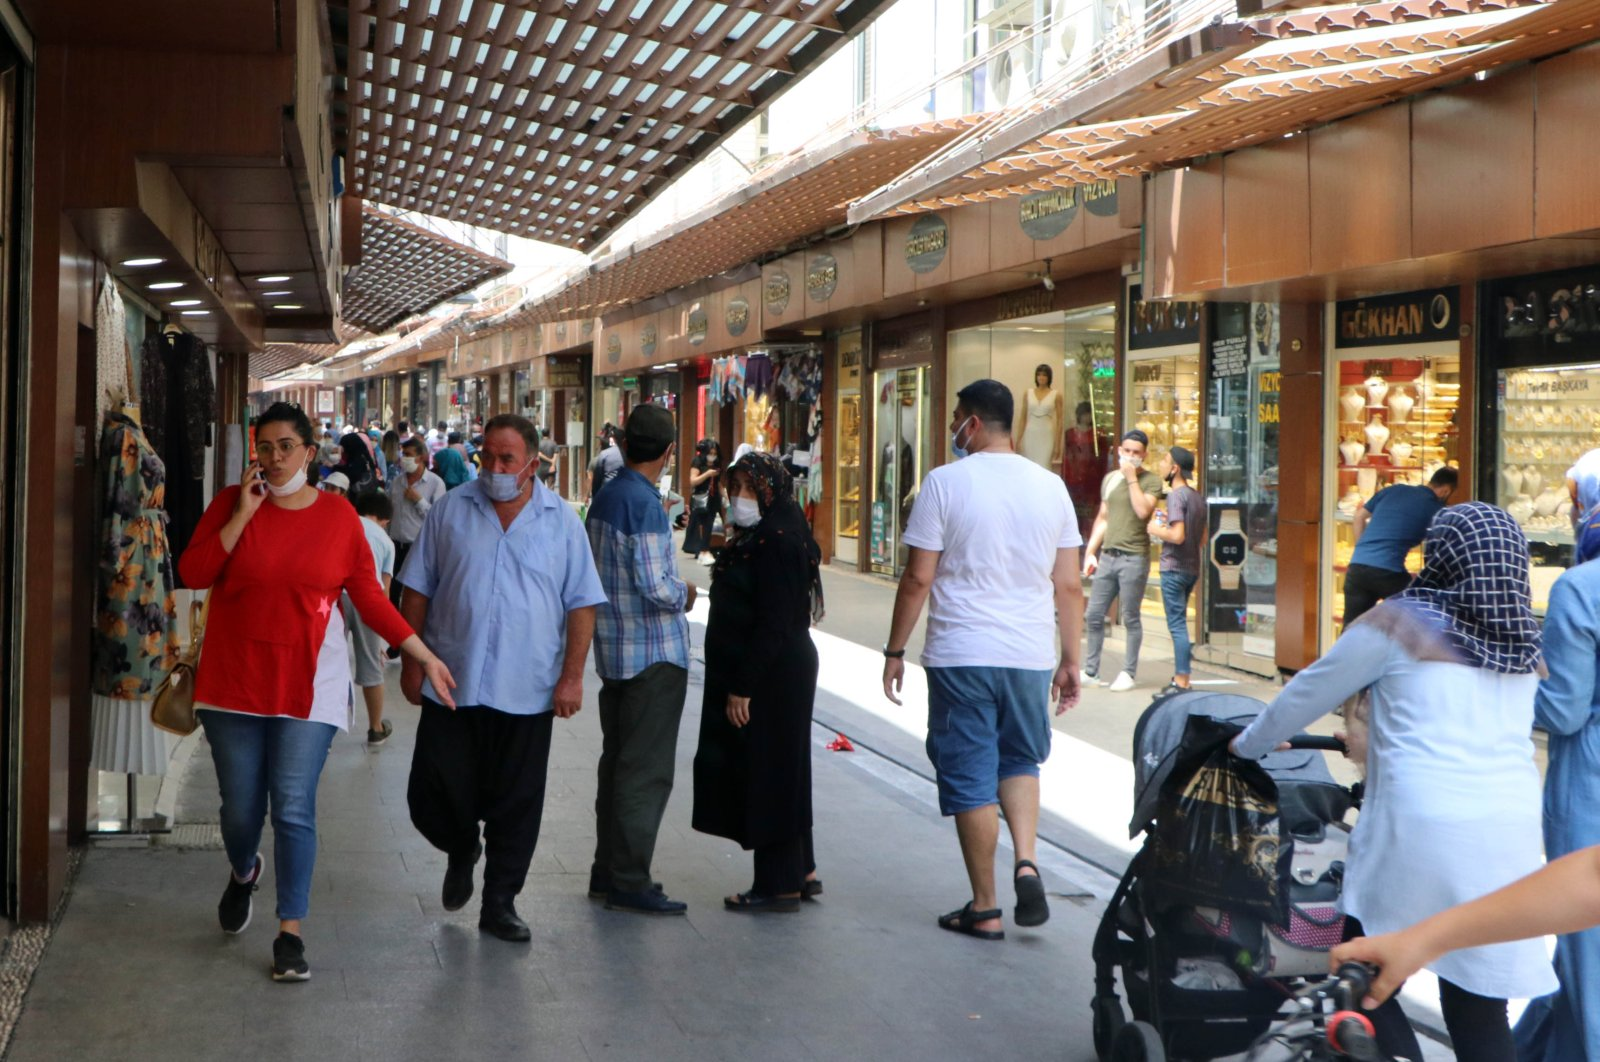 People walk on a street in Gaziantep, Turkey where daily cases rose recently, June 7, 2020. (DHA Photo)